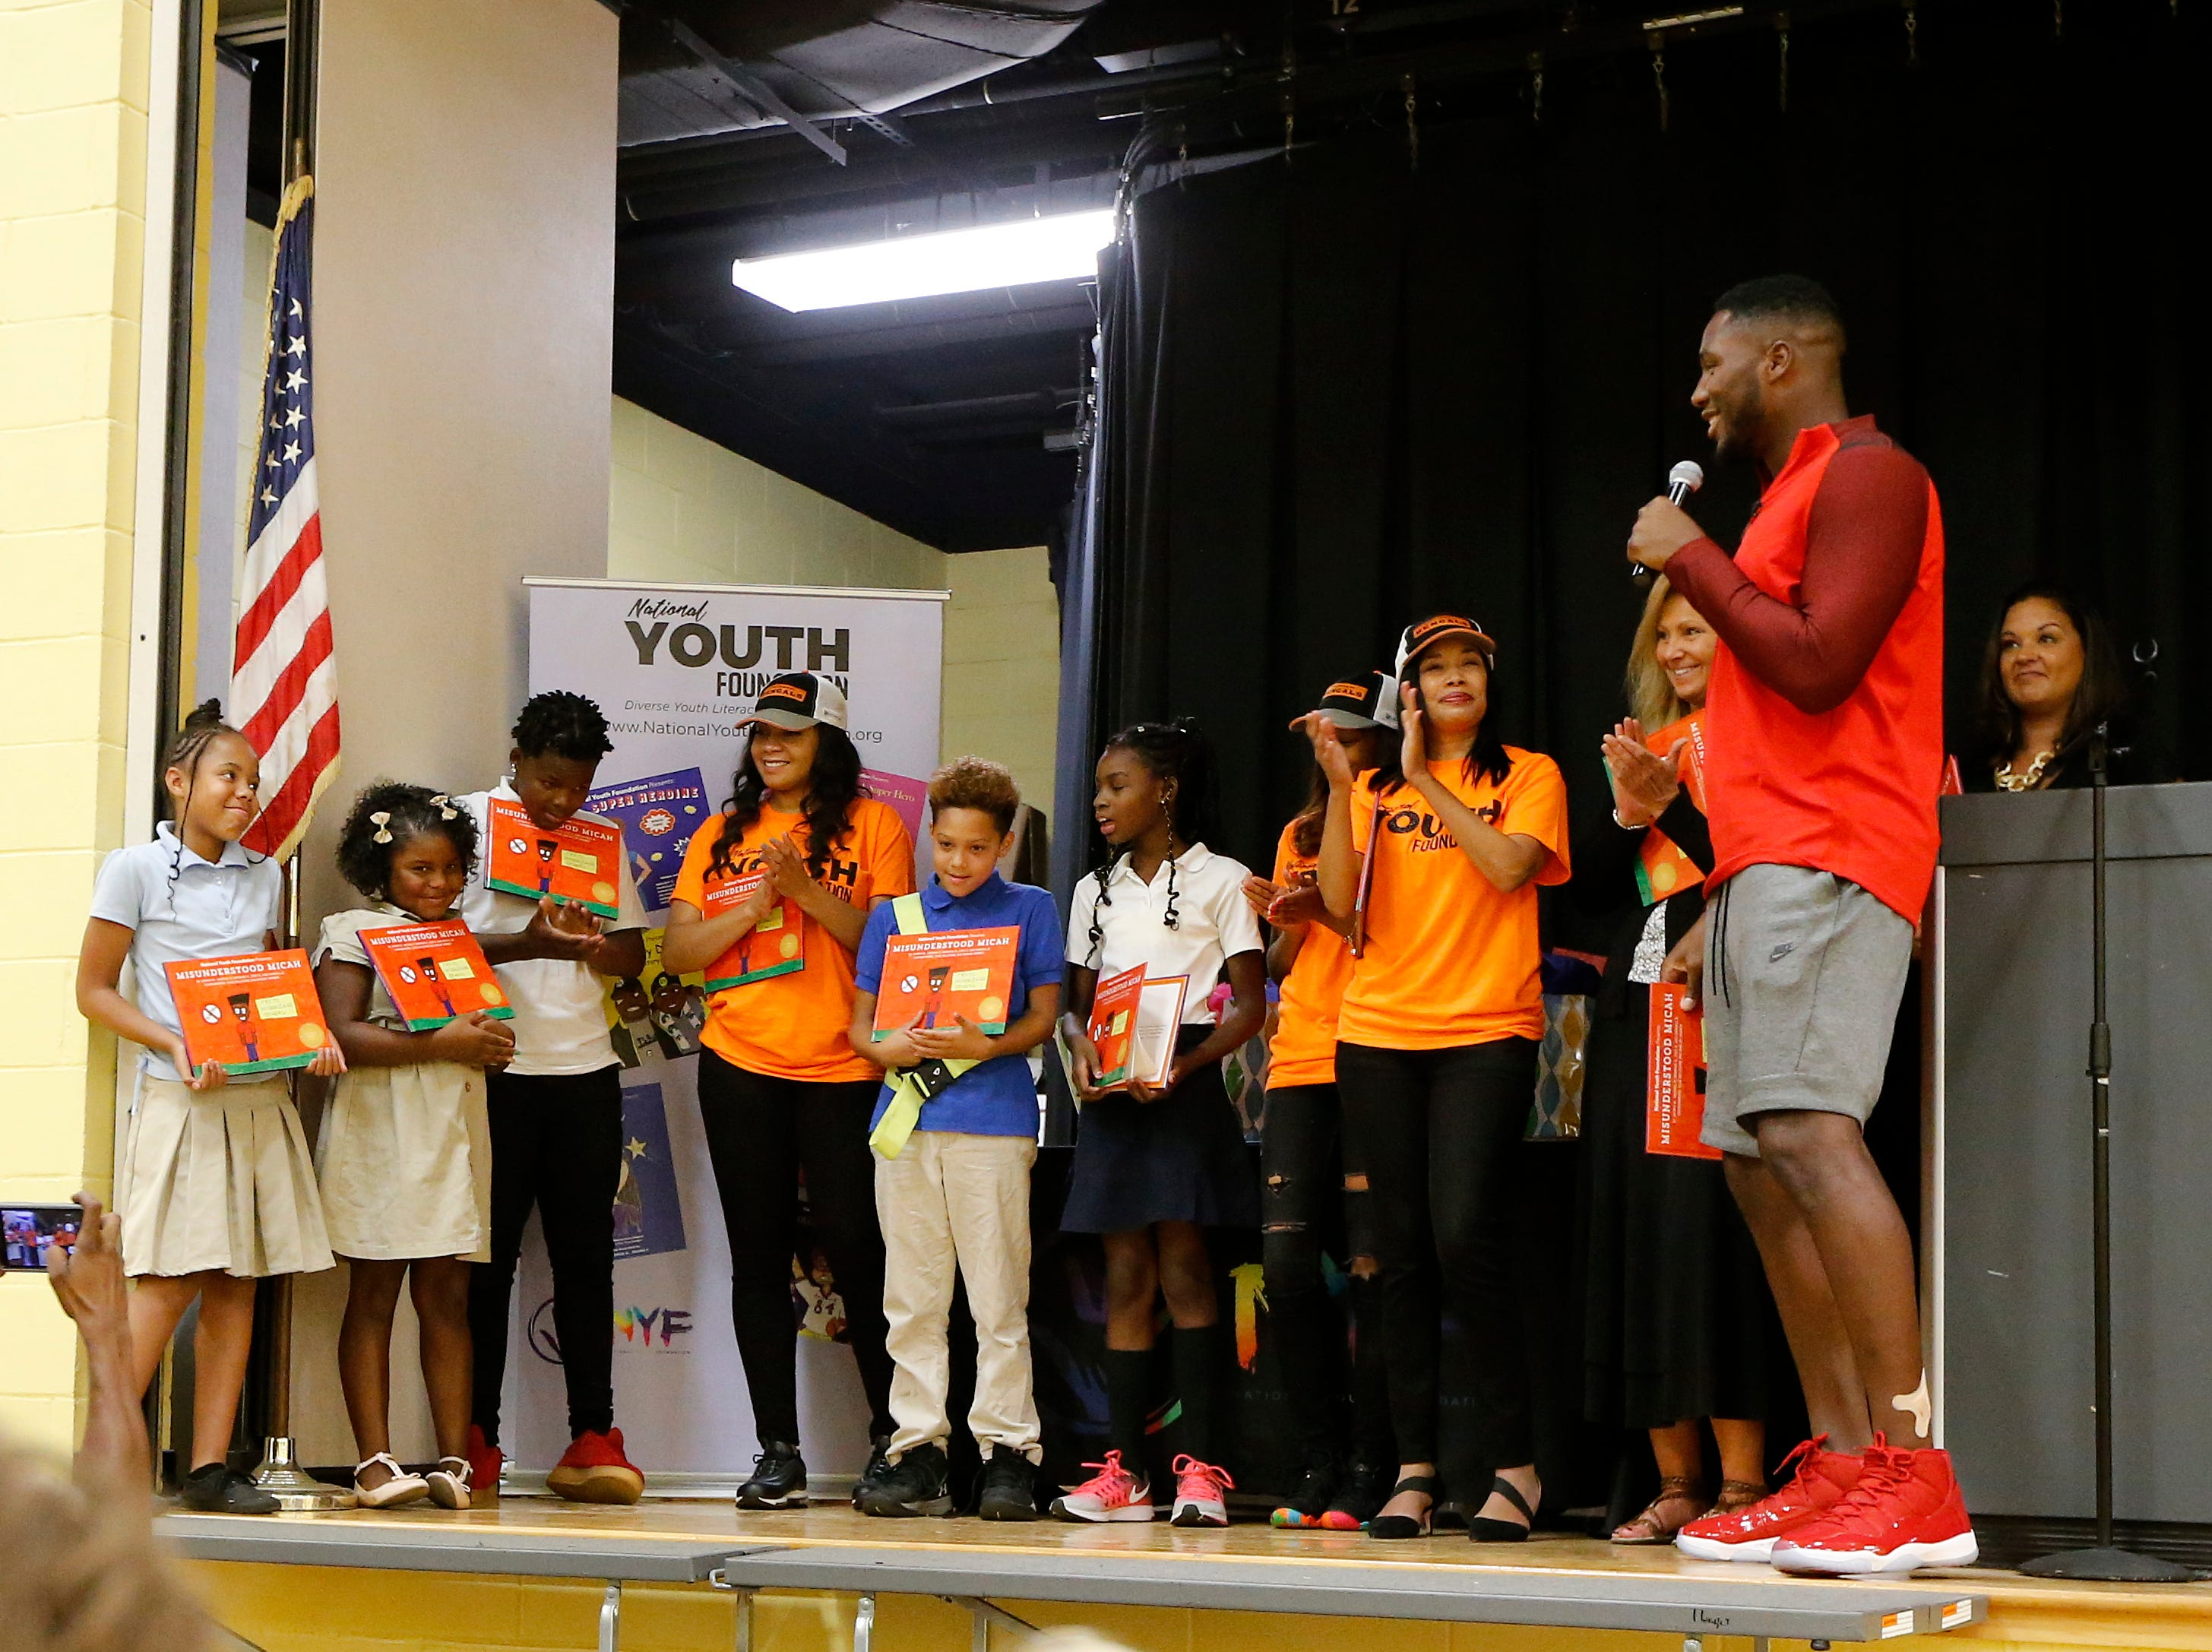 """Cincinnati Bengals defensive end Carlos Dunlap congratulates the winning students during a surprise assembly at Winton Hills Academy in Cincinnati on Tuesday, Sept. 18, 2018. Five students of the academy were named winners, becoming published authors, of a national contest for a book about anti-bullying. The students' book, """"Misunderstanding Micah"""" was selected as the winner of the 2018 National Student Book Scholar Competition by The National Youth Foundation."""